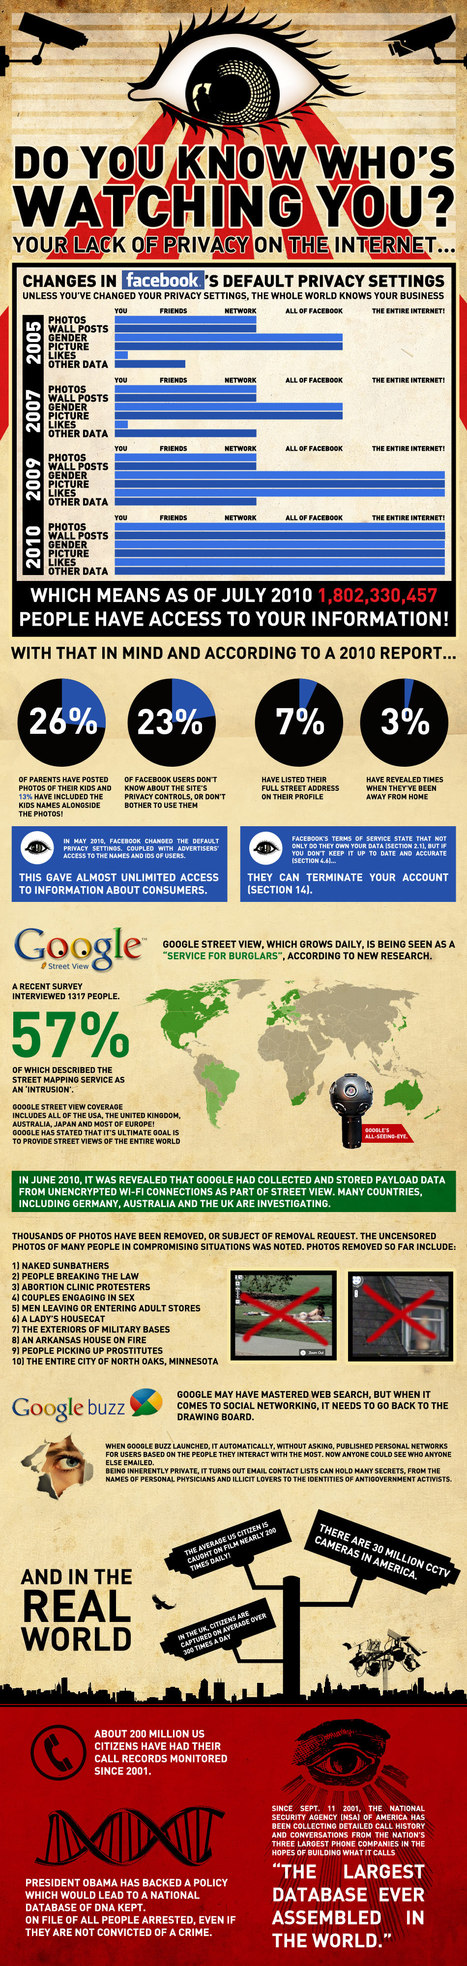 Infographic : Do You Know Who's Watching You? | Visual.ly | Social Media and Web Infographics hh | Scoop.it